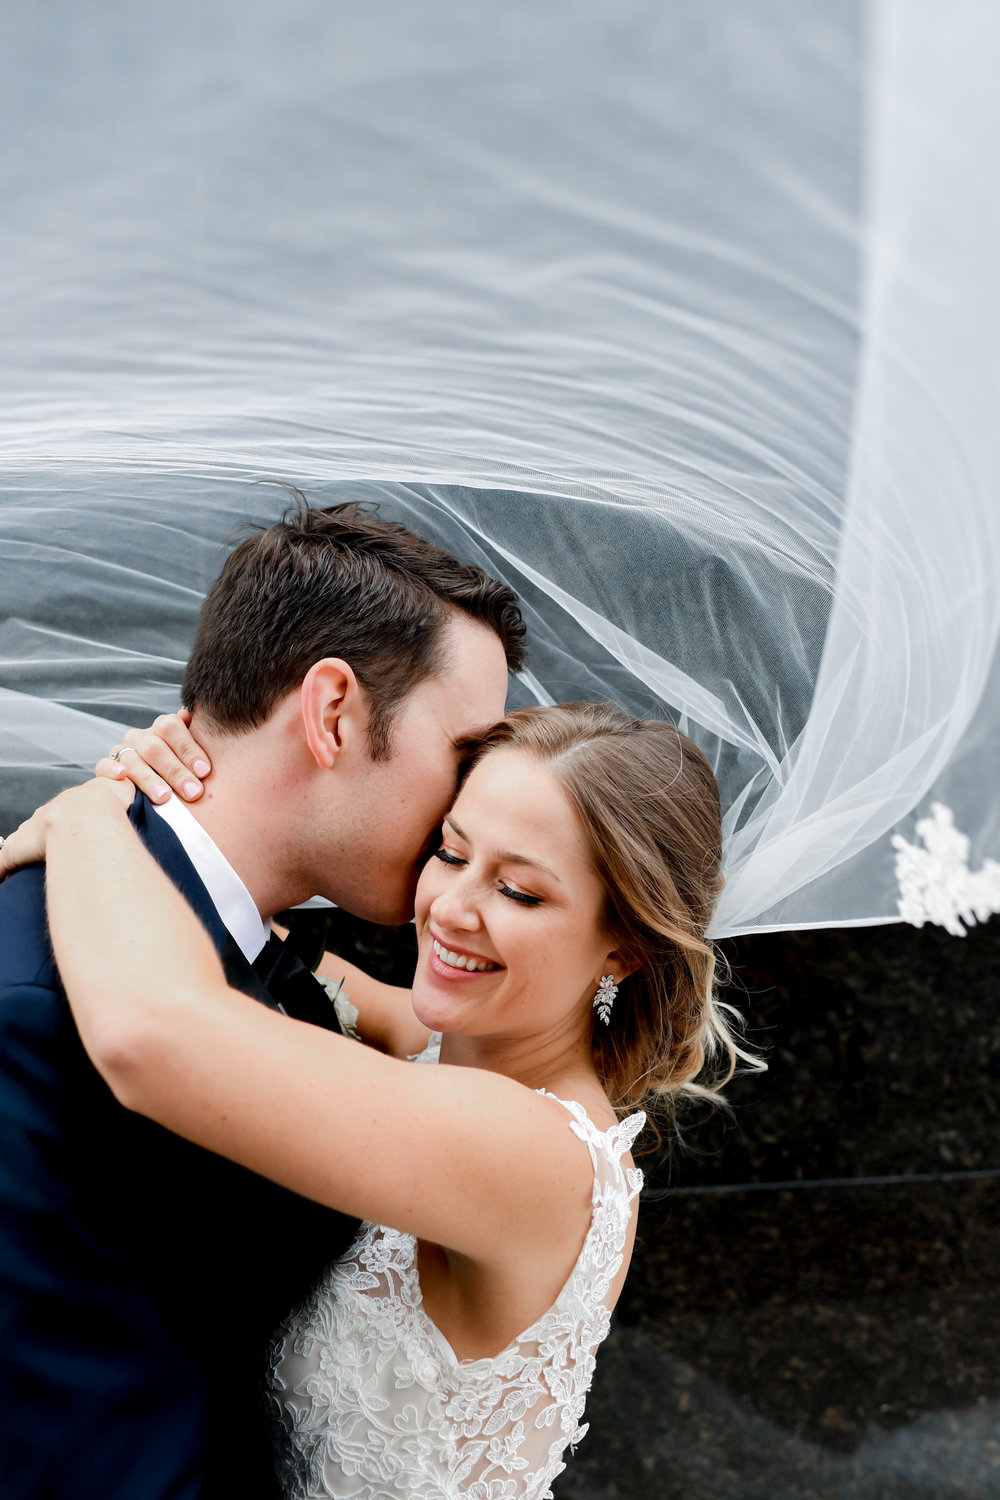 Bride and groom pose for wedding pictures outside with bride's veil flowing in the wind at Buffalo, NY wedding planned by Exhale Events. Find more wedding inspiration at exhale-events.com!